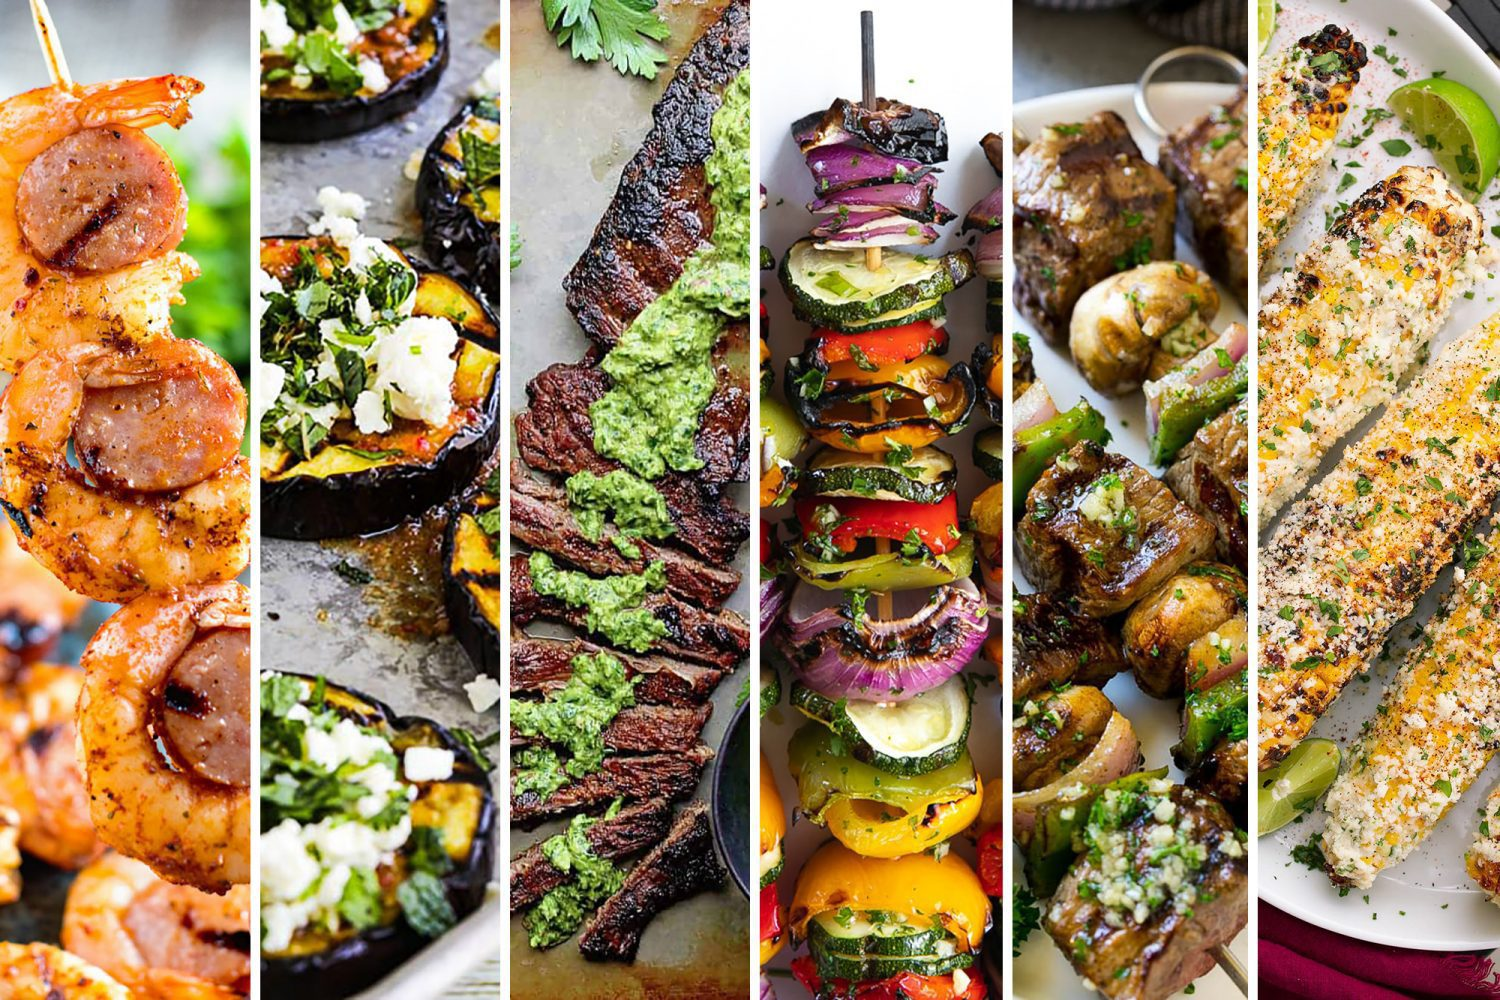 Looking for some new grilling recipes? Here are ten grilled meat, seafood and veggie recipes you have to try!